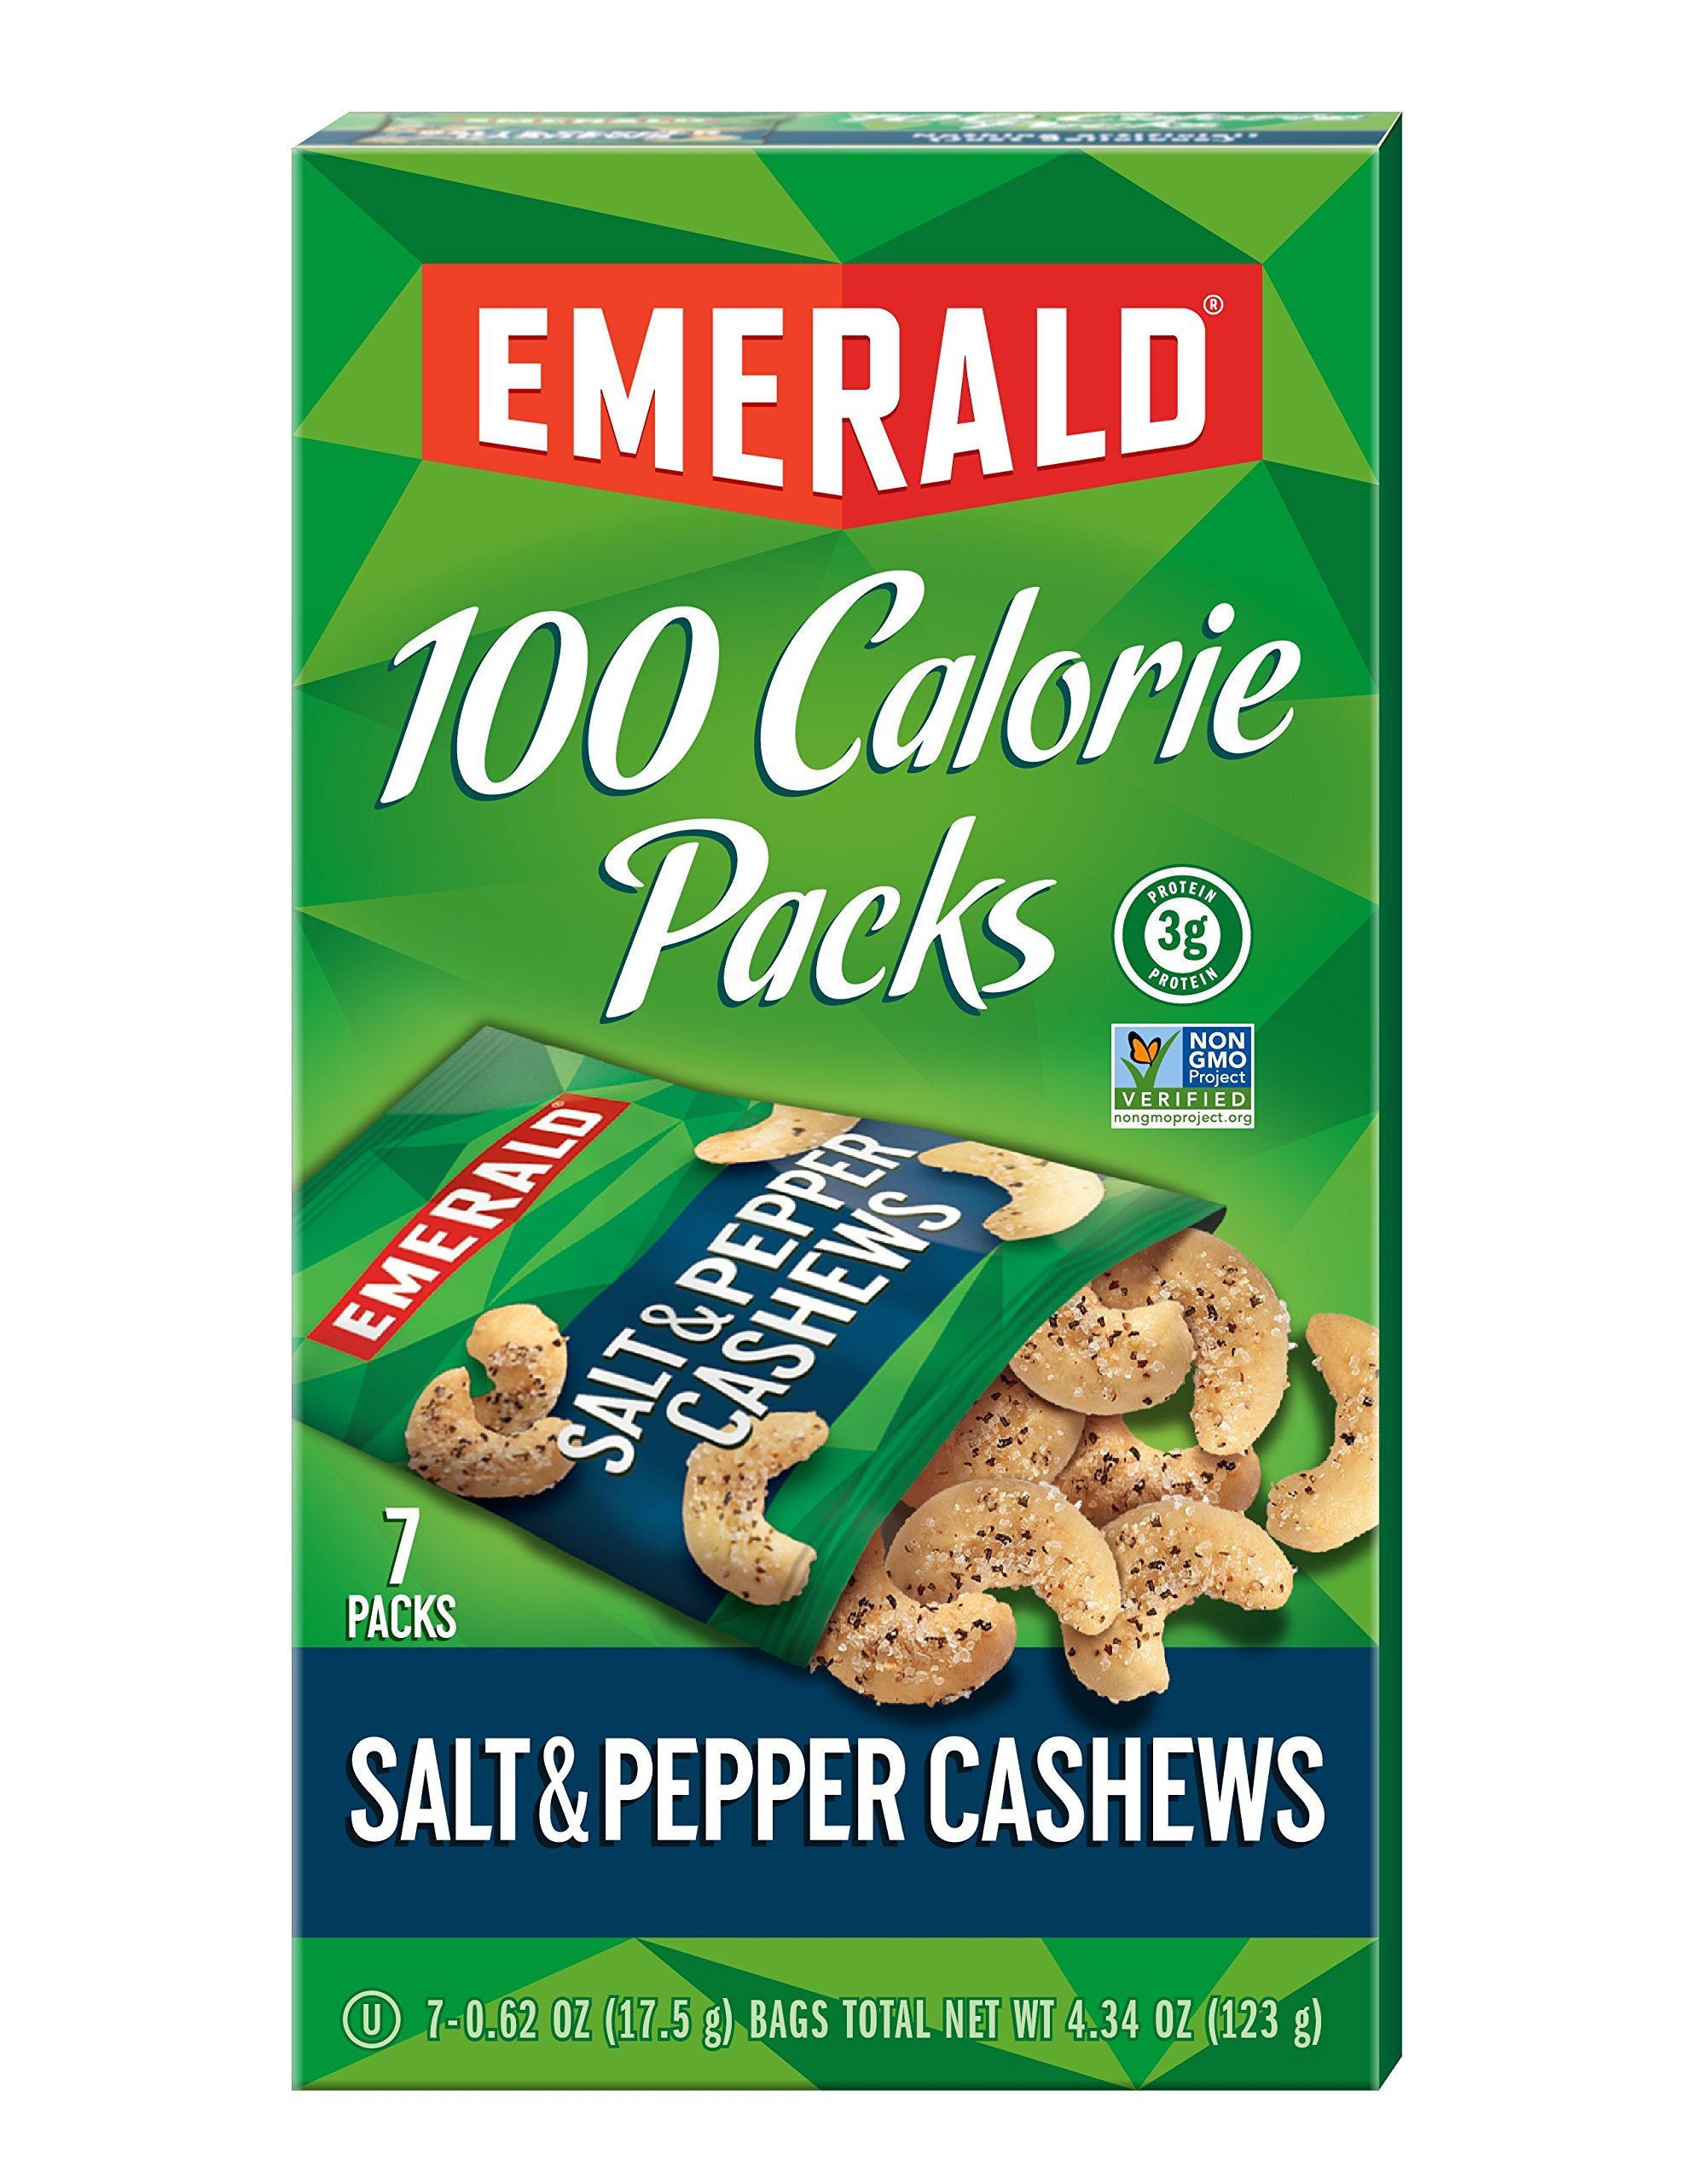 Emerald Nuts, Salt and Pepper Cashews 100 Calorie Packs, 7-Count Box